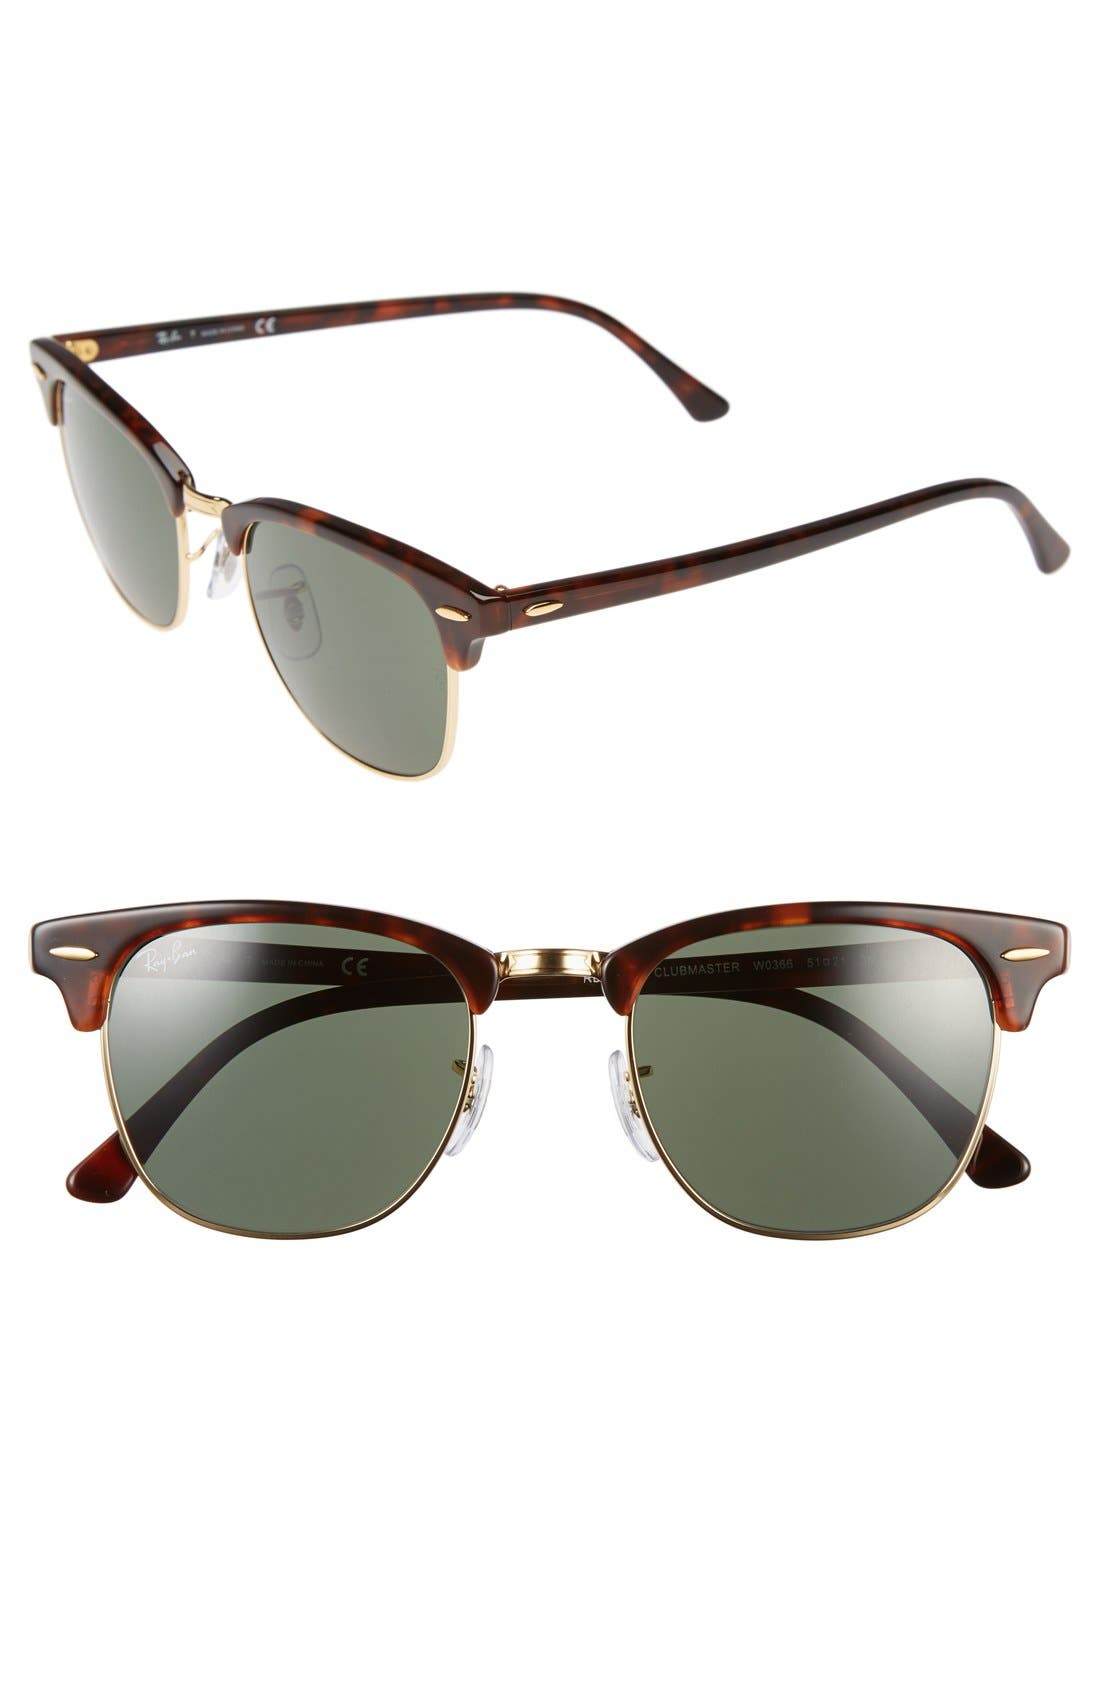 Ray-Ban Standard Clubmaster 51mm Sunglasses